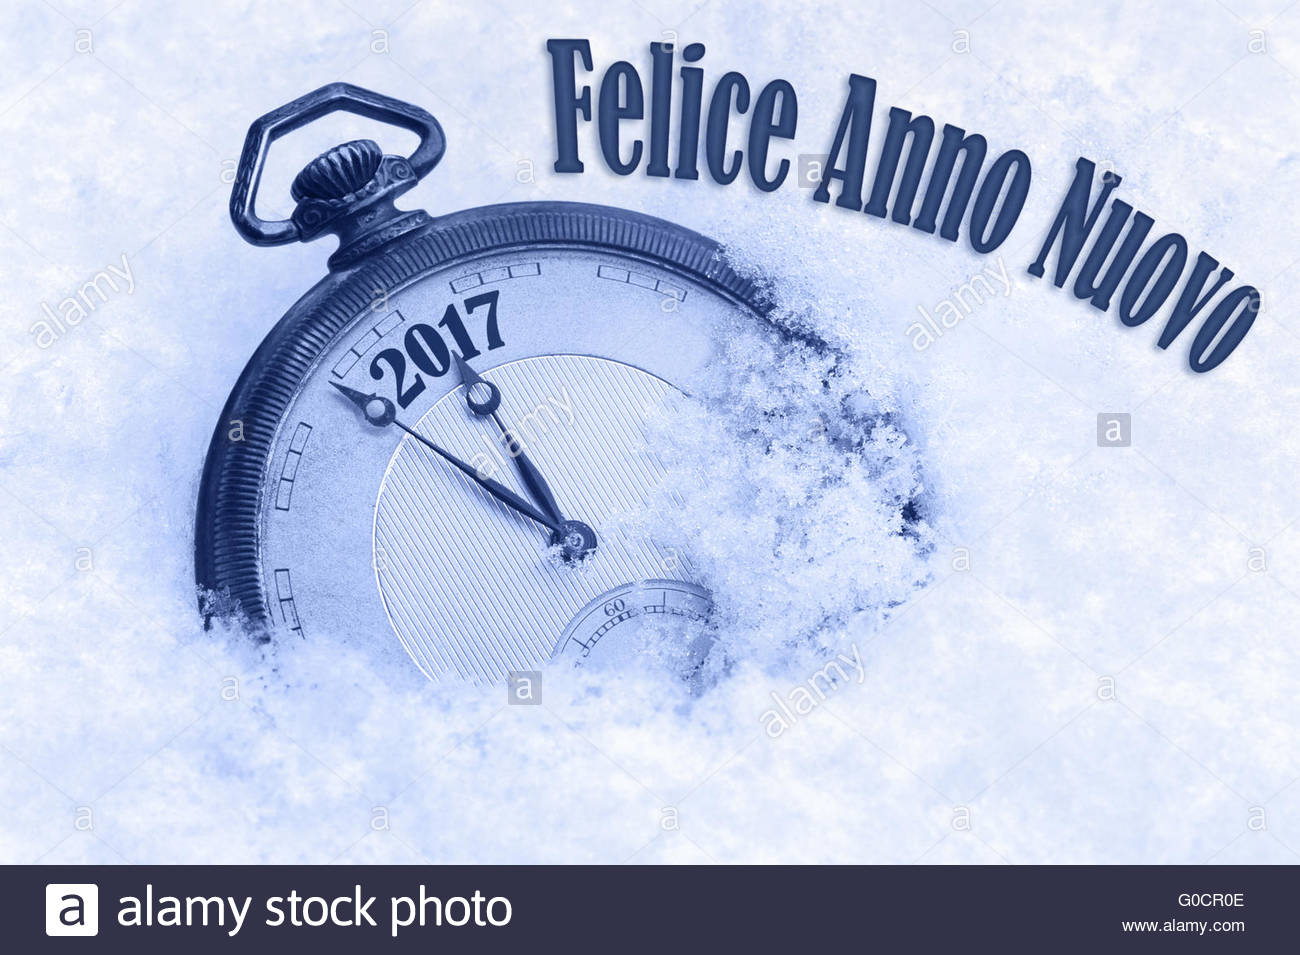 Italian language stock photos italian language stock images alamy new year 2017 greeting in italian language felice anno nuovo text 2017 greeting kristyandbryce Gallery